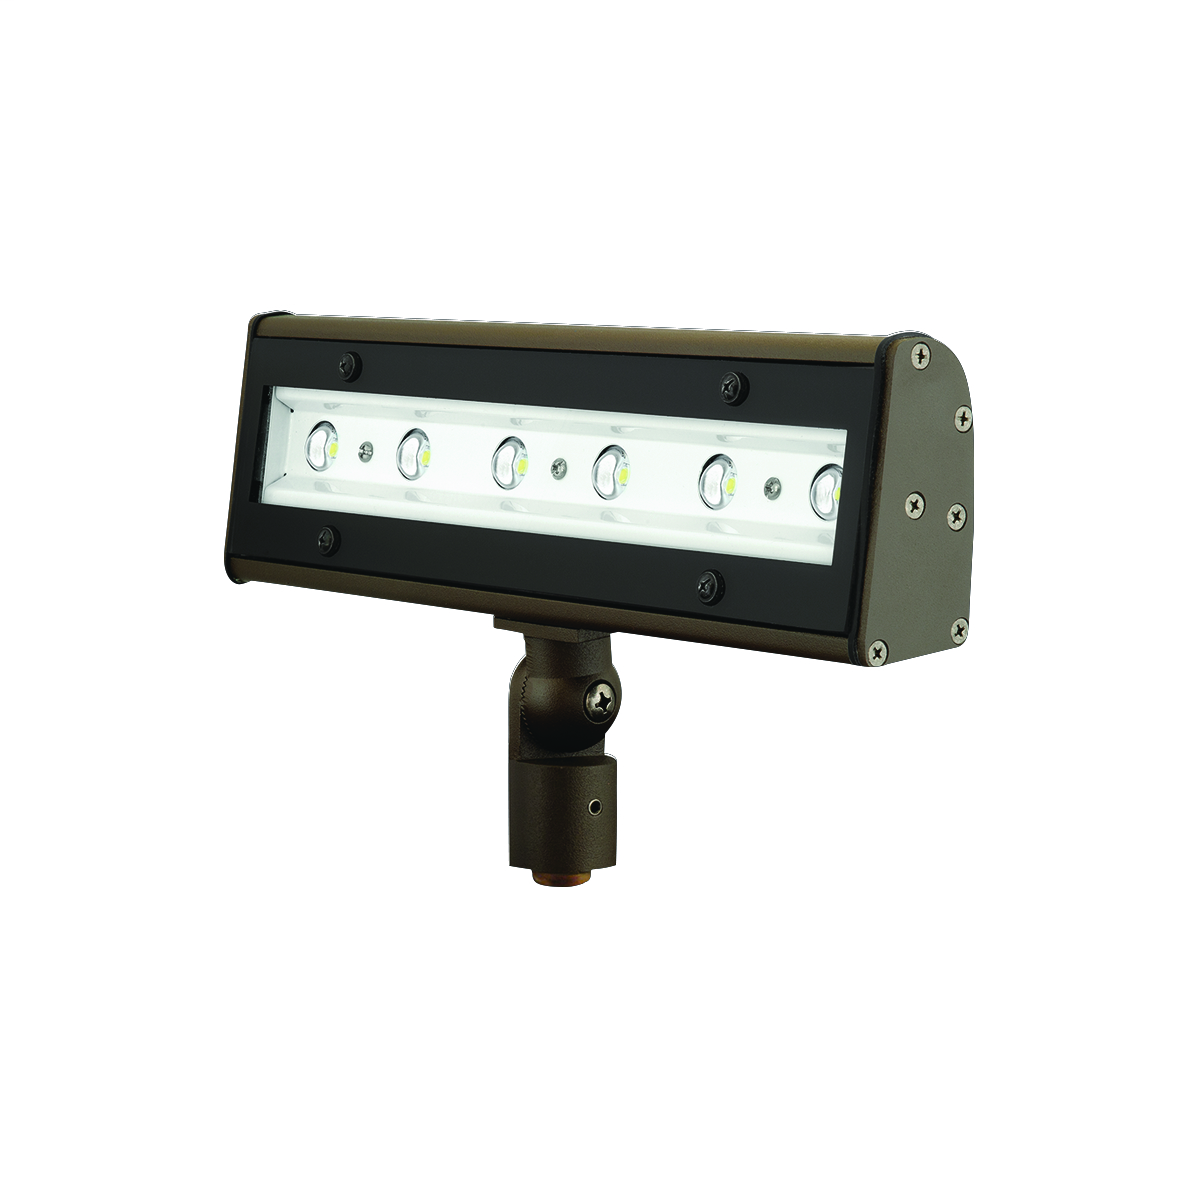 ALF is ideal for small floodlighting applications such as signs, facade, landscape accent or small area illumination to be easily hidden or blend into the landscape environment.